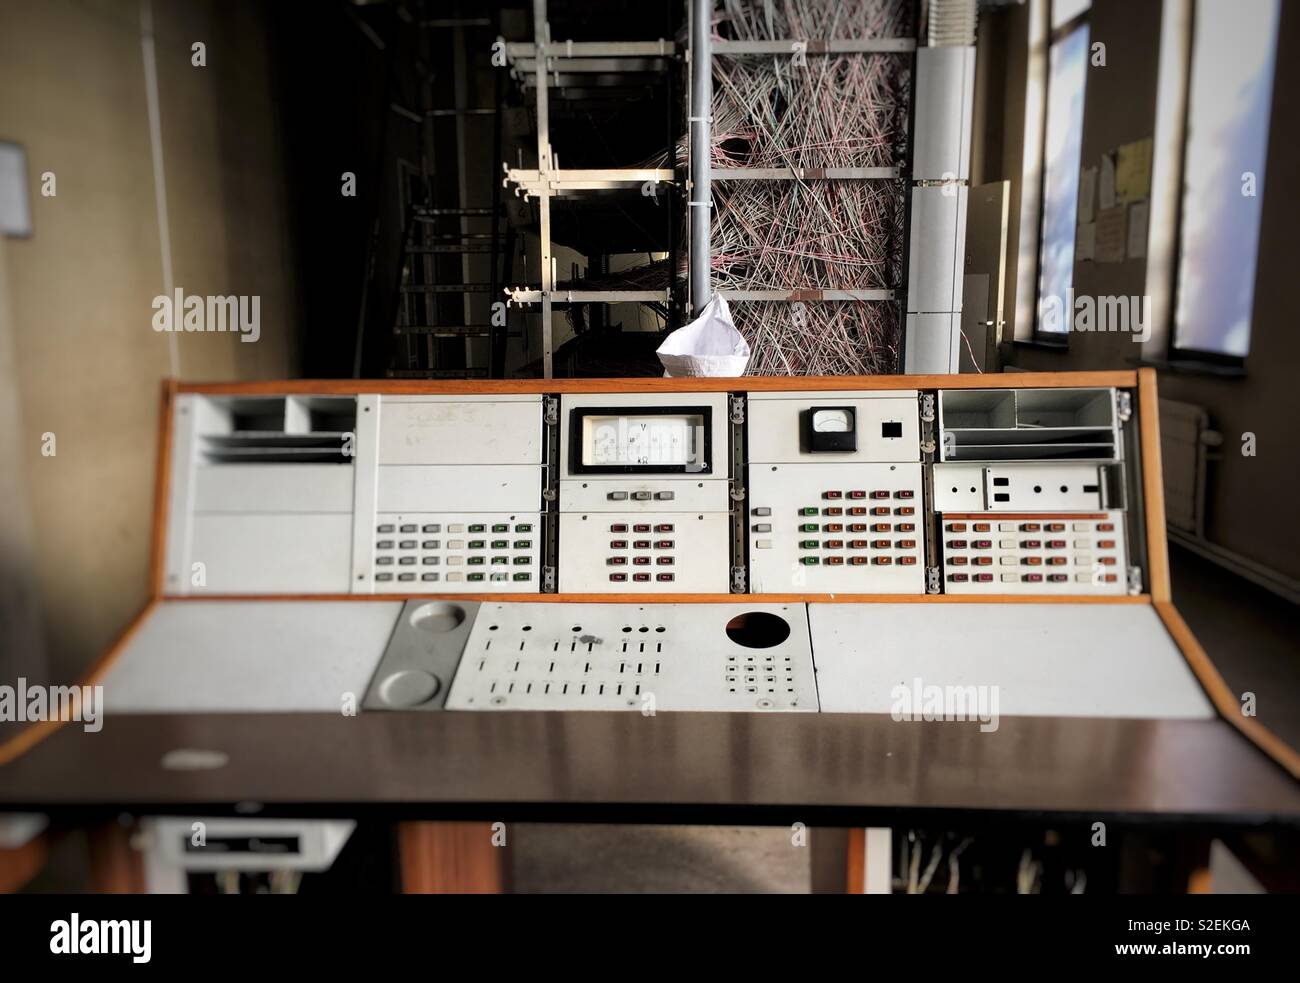 Abandoned outdated telecom network relay station for internet distribution - Stock Image